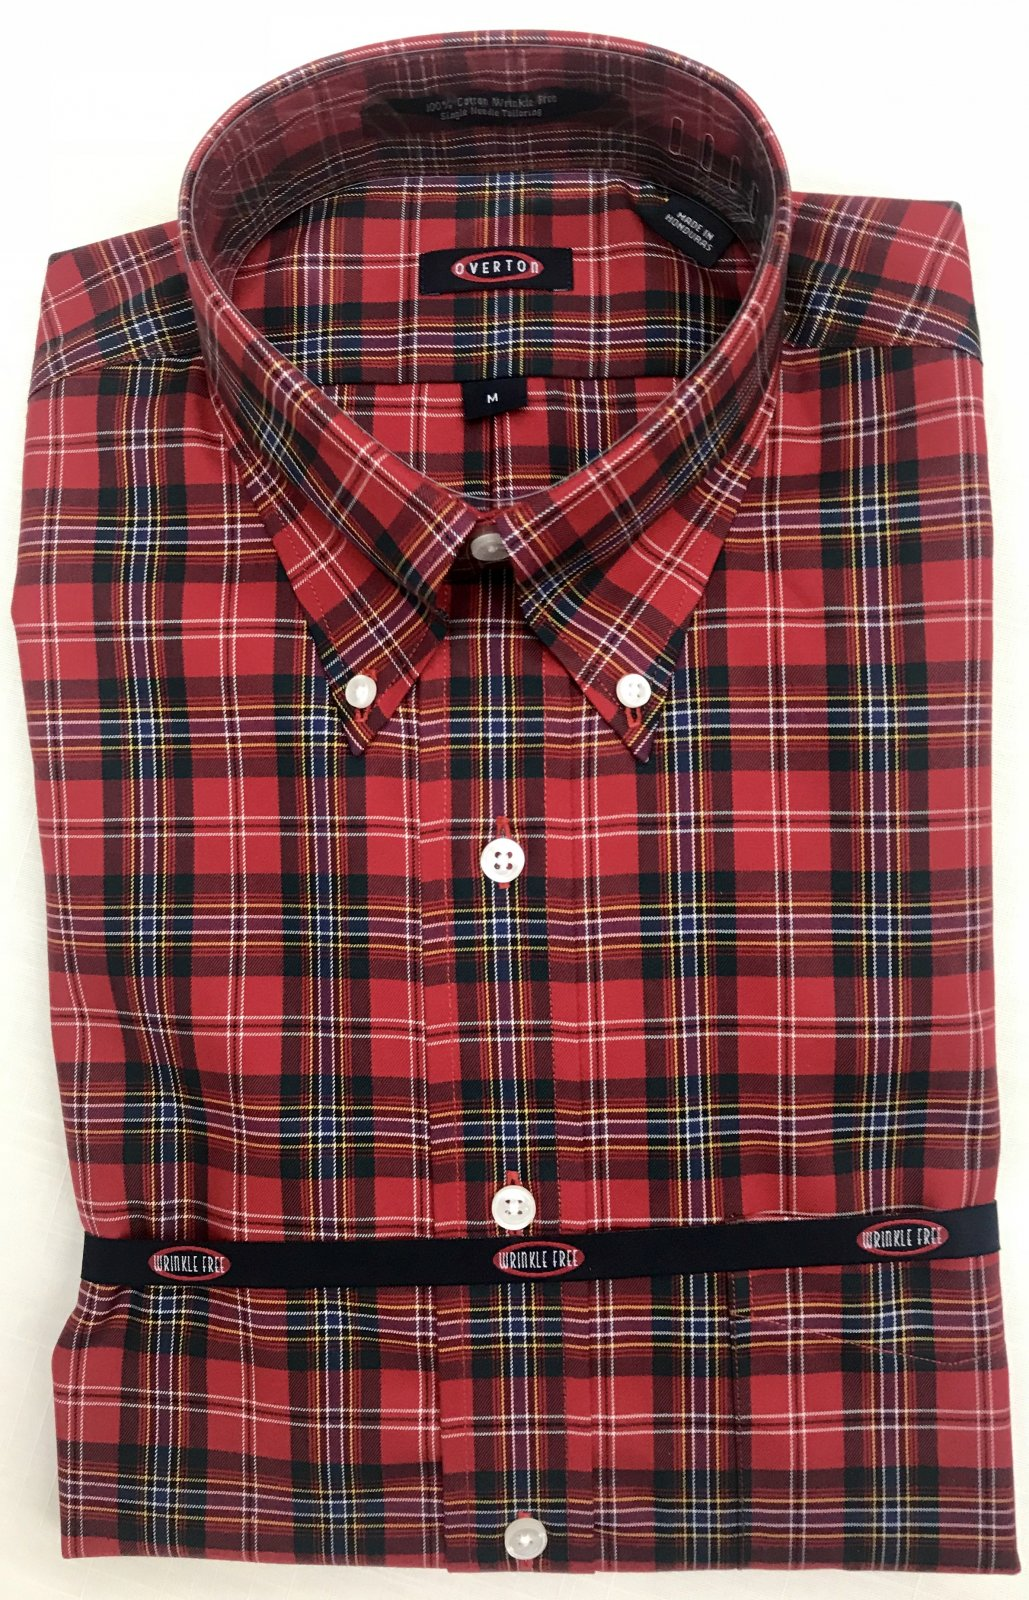 Overton Red Plaid LS Sportshirt